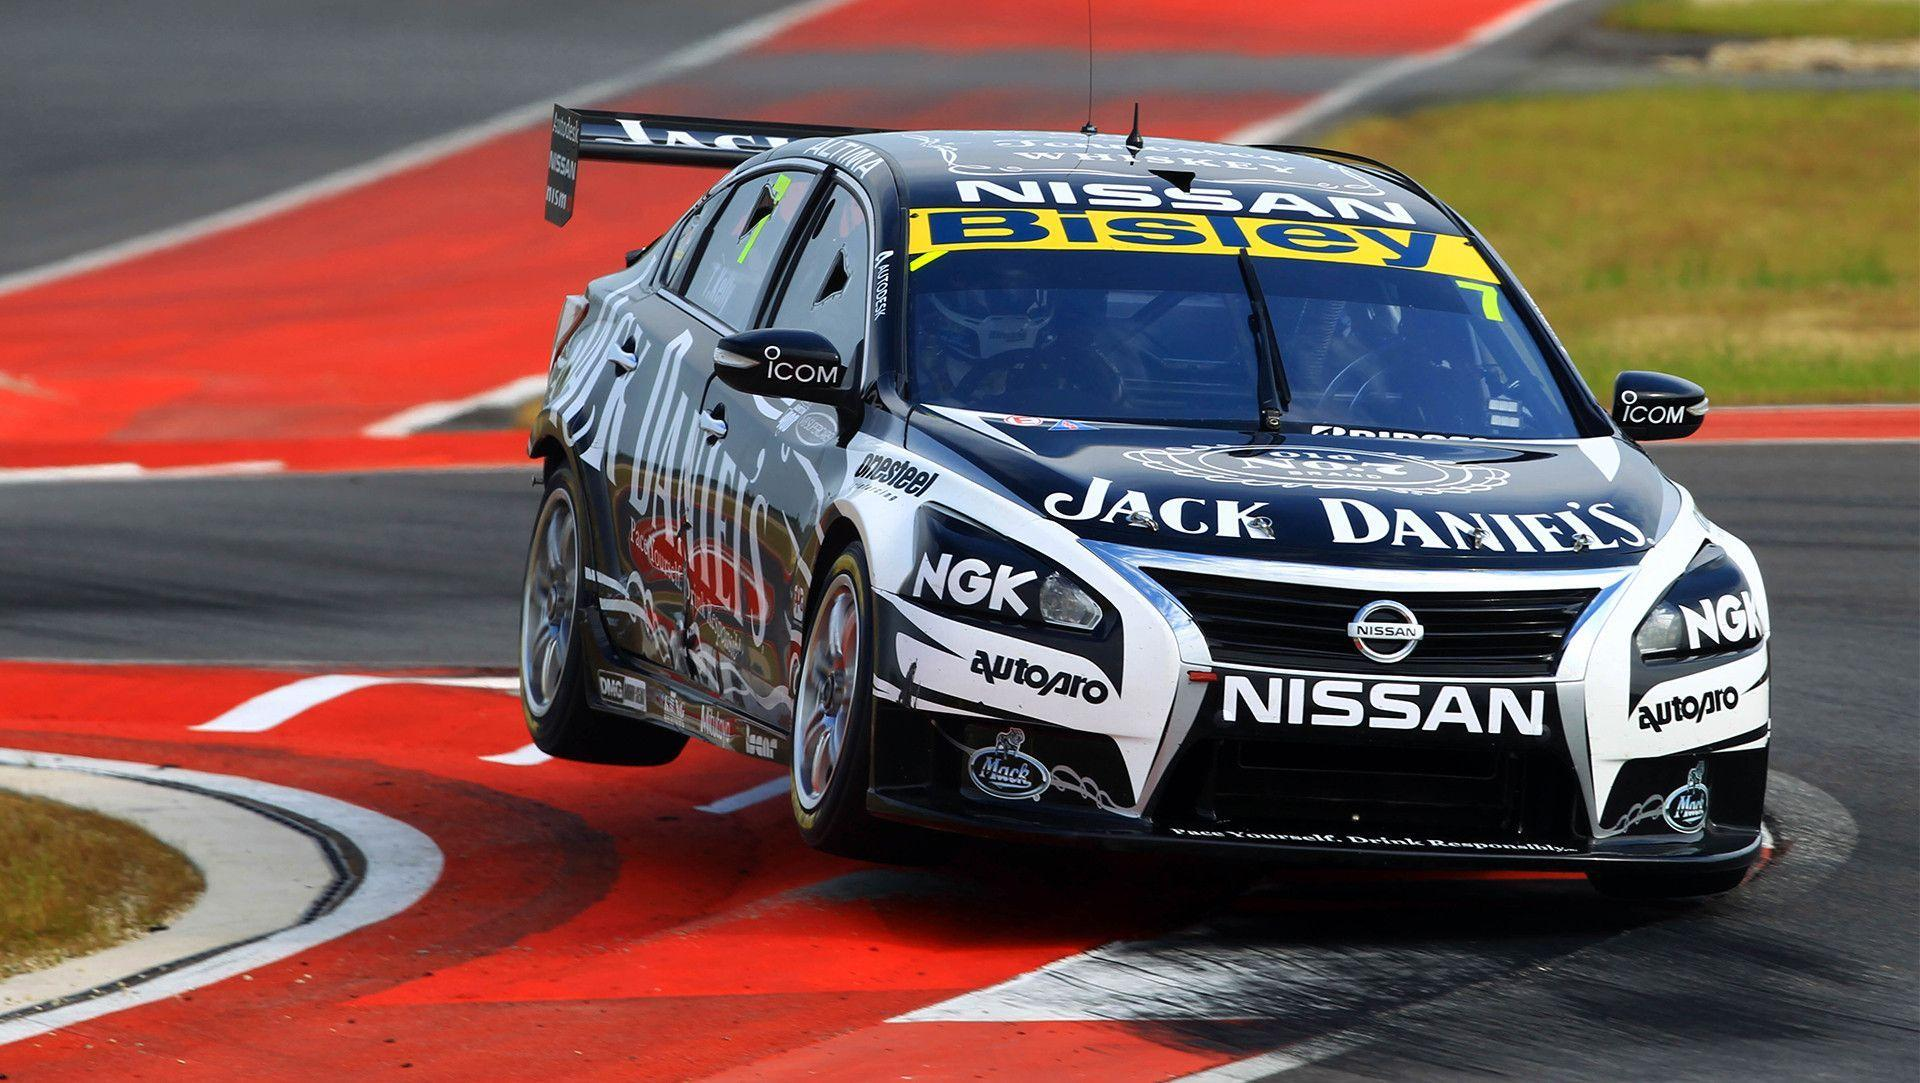 Gallery For gt V8 Supercars Wallpaper 1920x1083